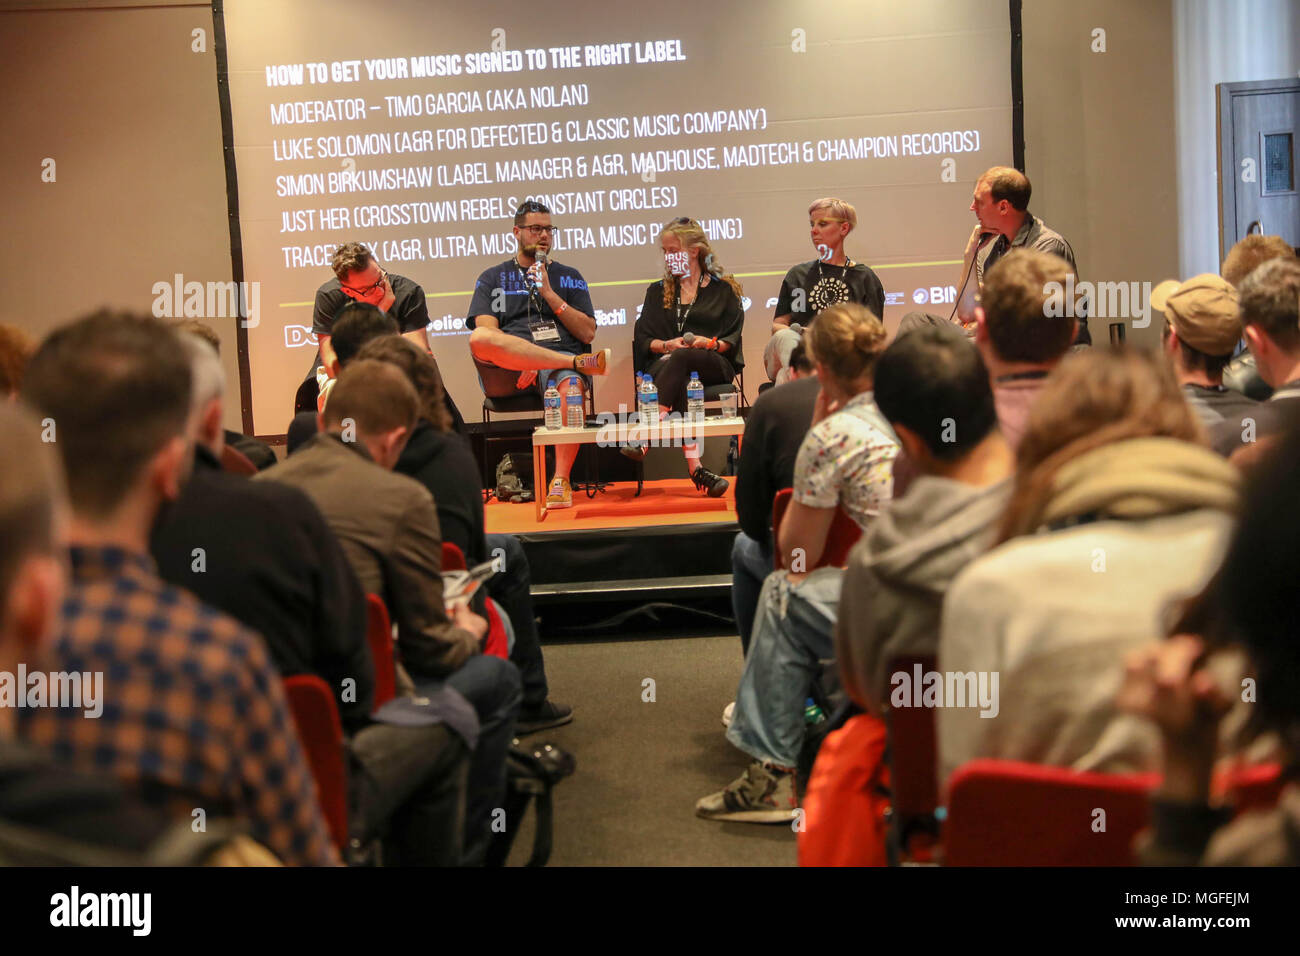 Brighton, UK,  26th April 2018.The UK's foremost electronic music conference returns for its 5th year to Brighton Dome and various venues across the city from 25 - 28 April 2018.  How to get your music signed to the right label.  Moderator – Timo Garcia (aka Nolan); Luke Solomon (A&R for Defected & Classic Music Company); Simon Birkumshaw (Label Manager & A&R, Madhouse, Madtech & Champion Records); Just Her (Crosstown Rebels, Constant Circles); Tracey Fox (A&R, Ultra Music & Ultra Music Publishing) - Stock Image